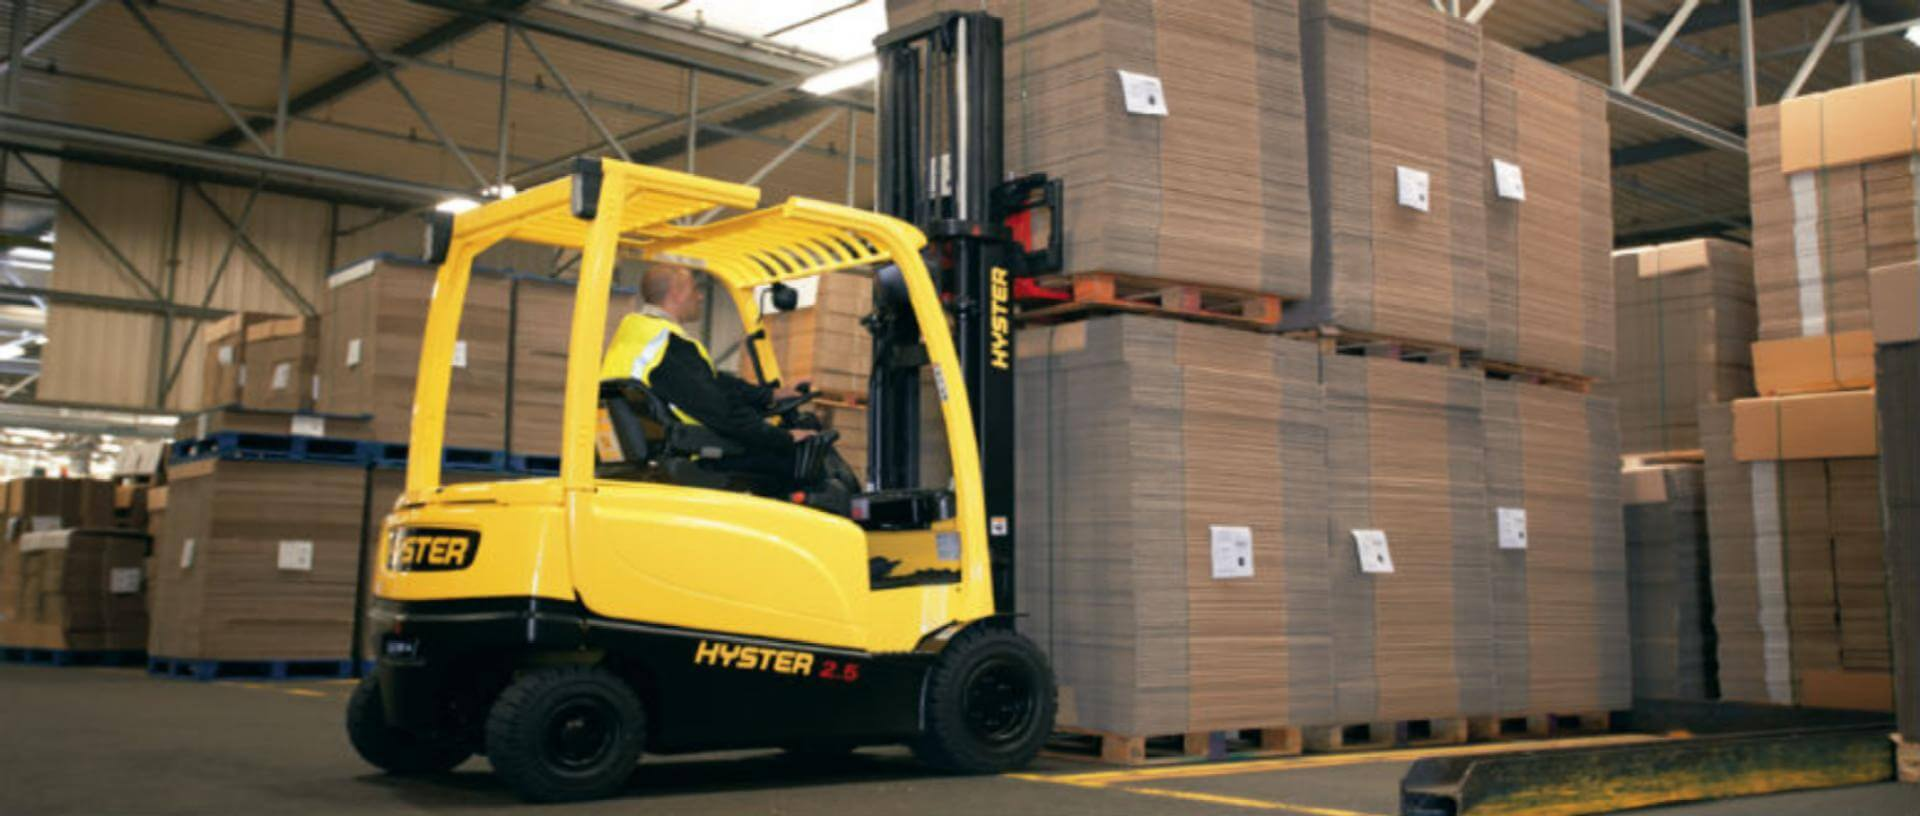 Hyster Yale Group